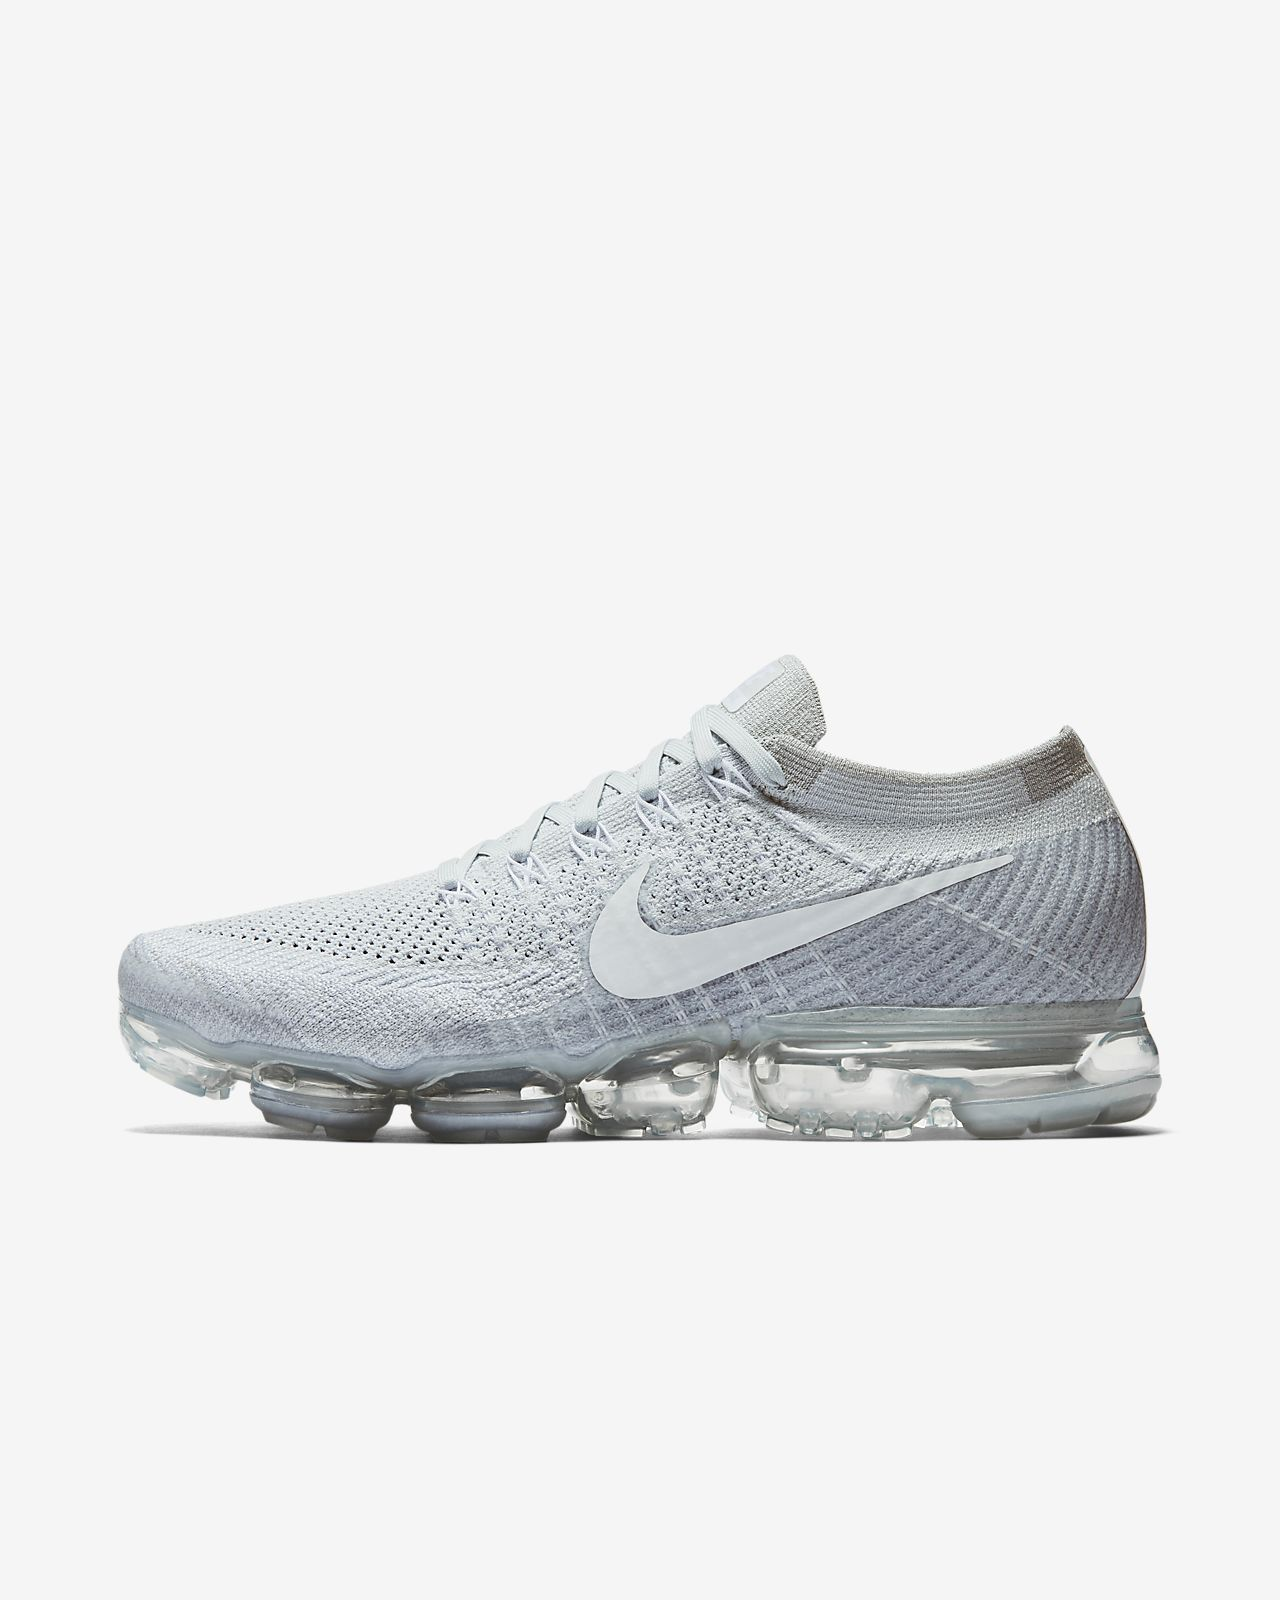 official photos 91e6d 258c8 nike air vapormax flyknit bambino nere